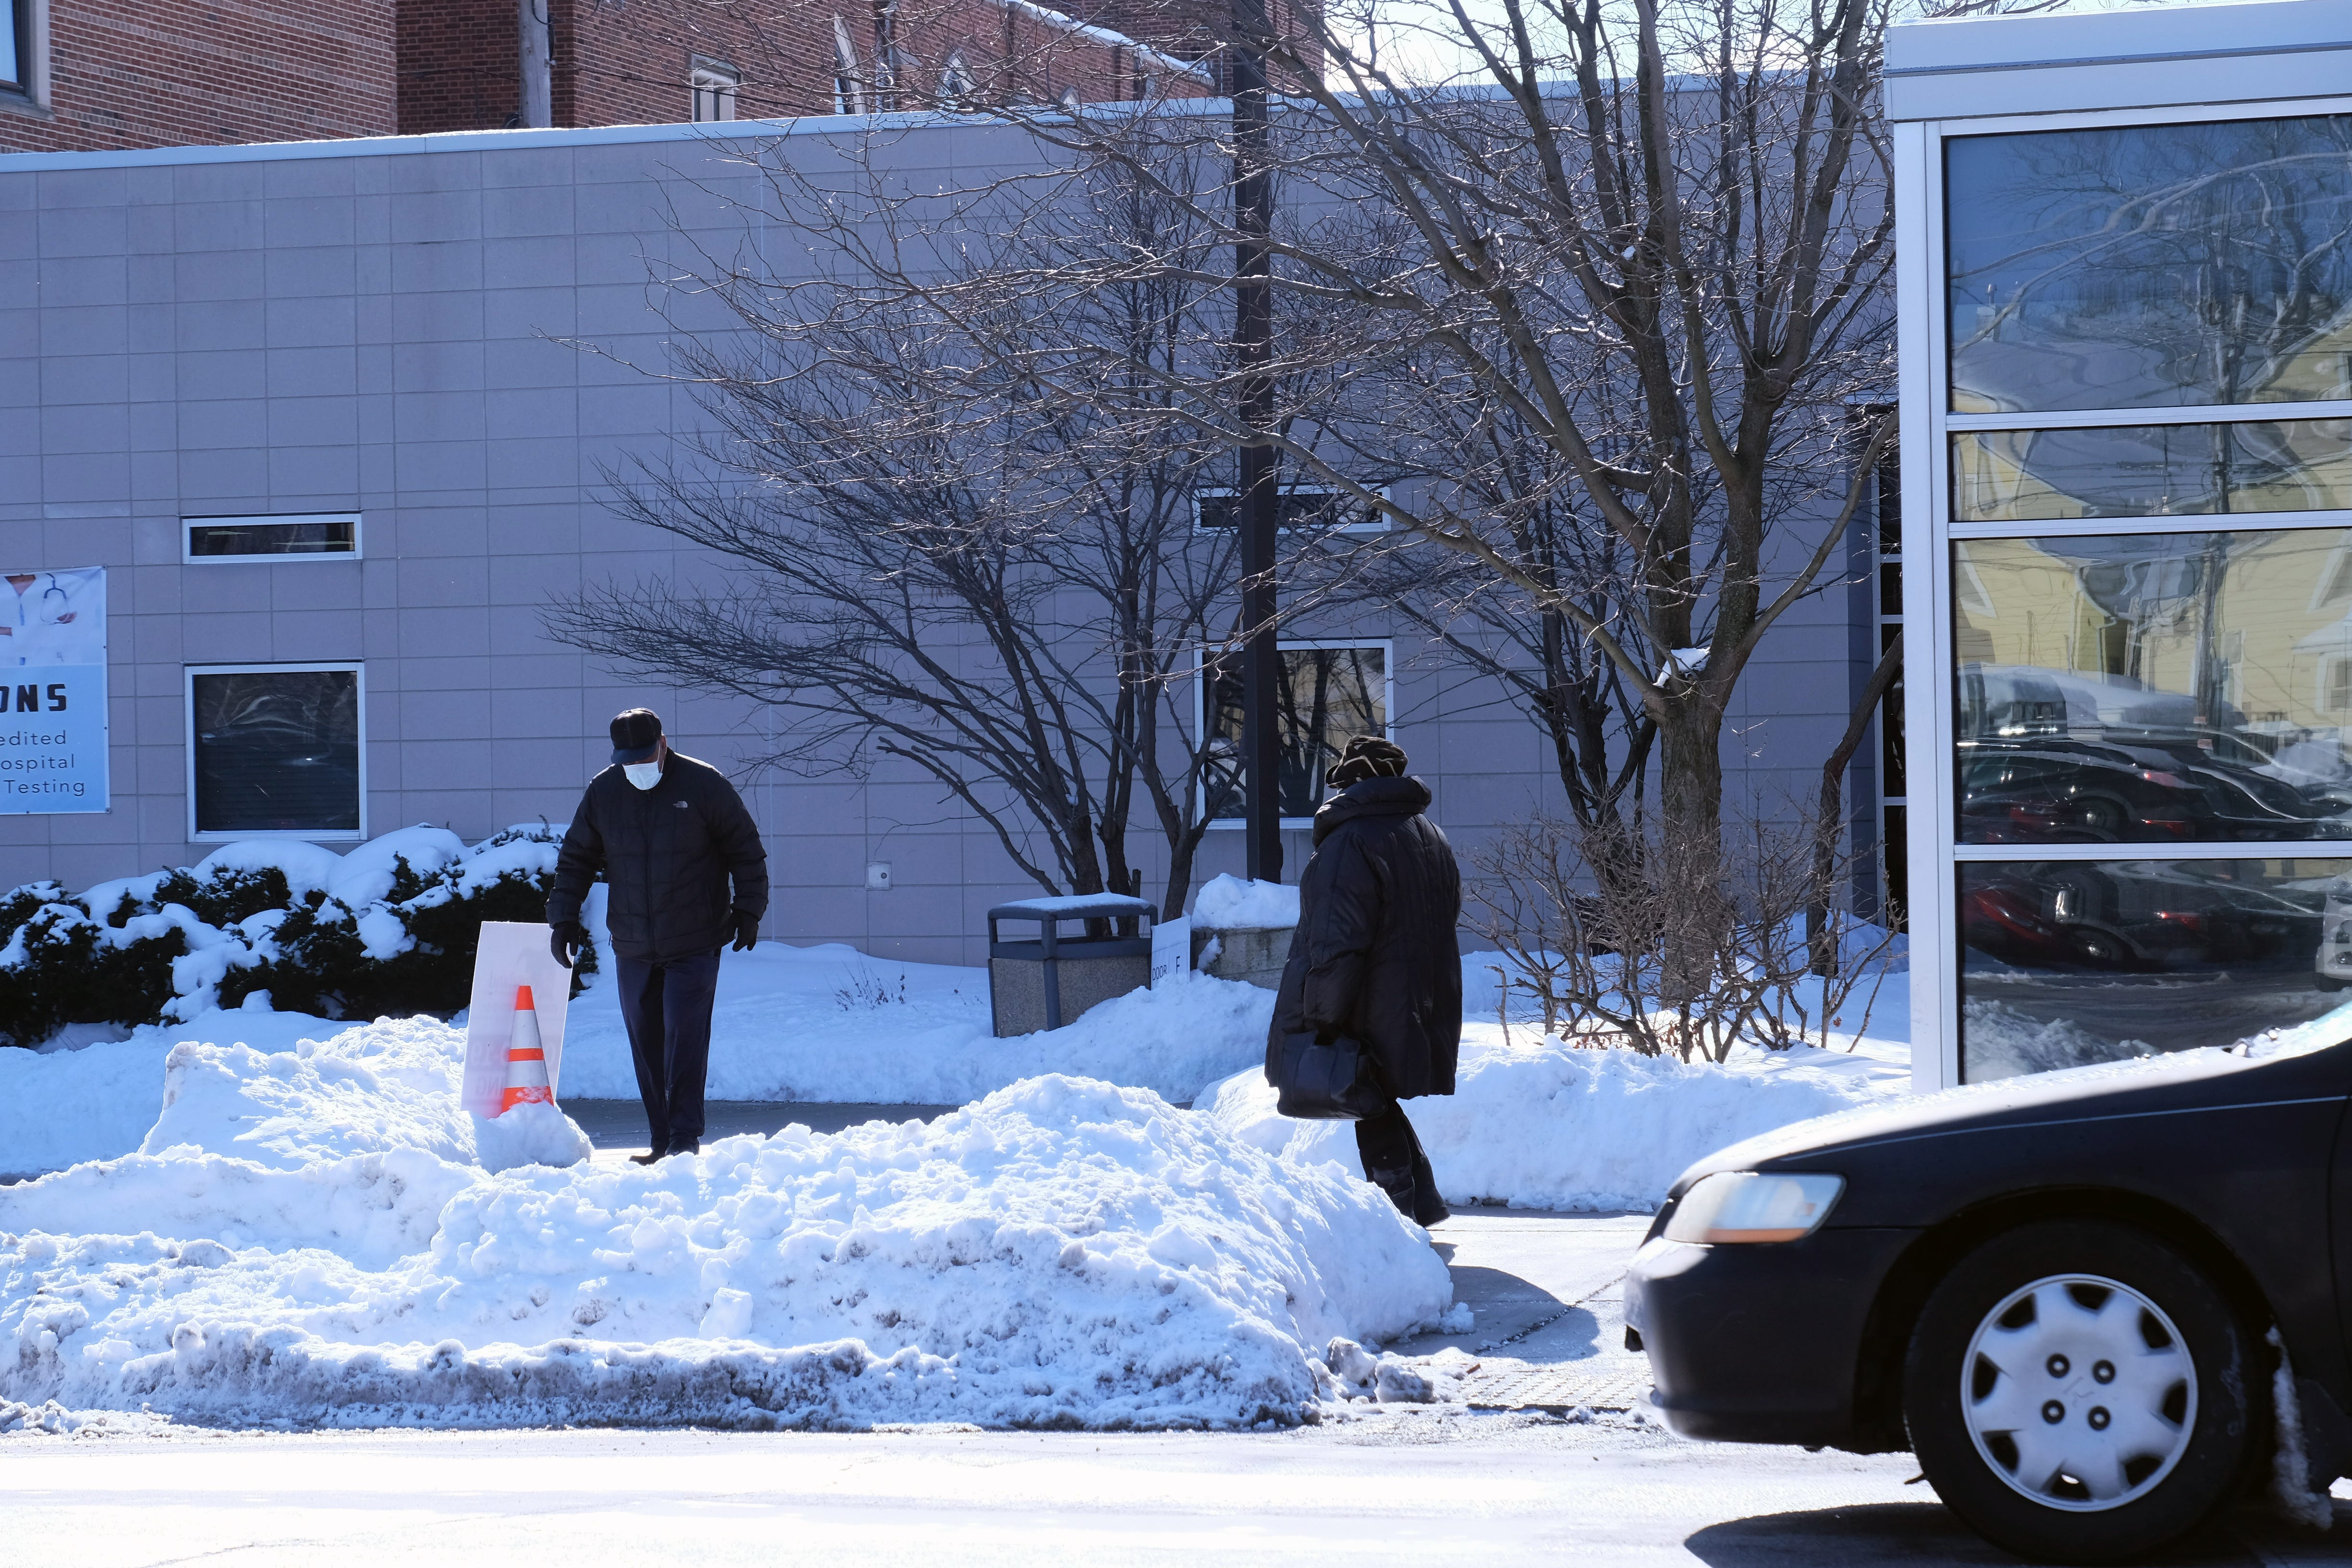 People from across Chicago trickled in and out of Roseland Community Hospital on the city's far south side in the 12-degree weather on Feb. 5. The hospital offered COVID-19 vaccinations by appointment.